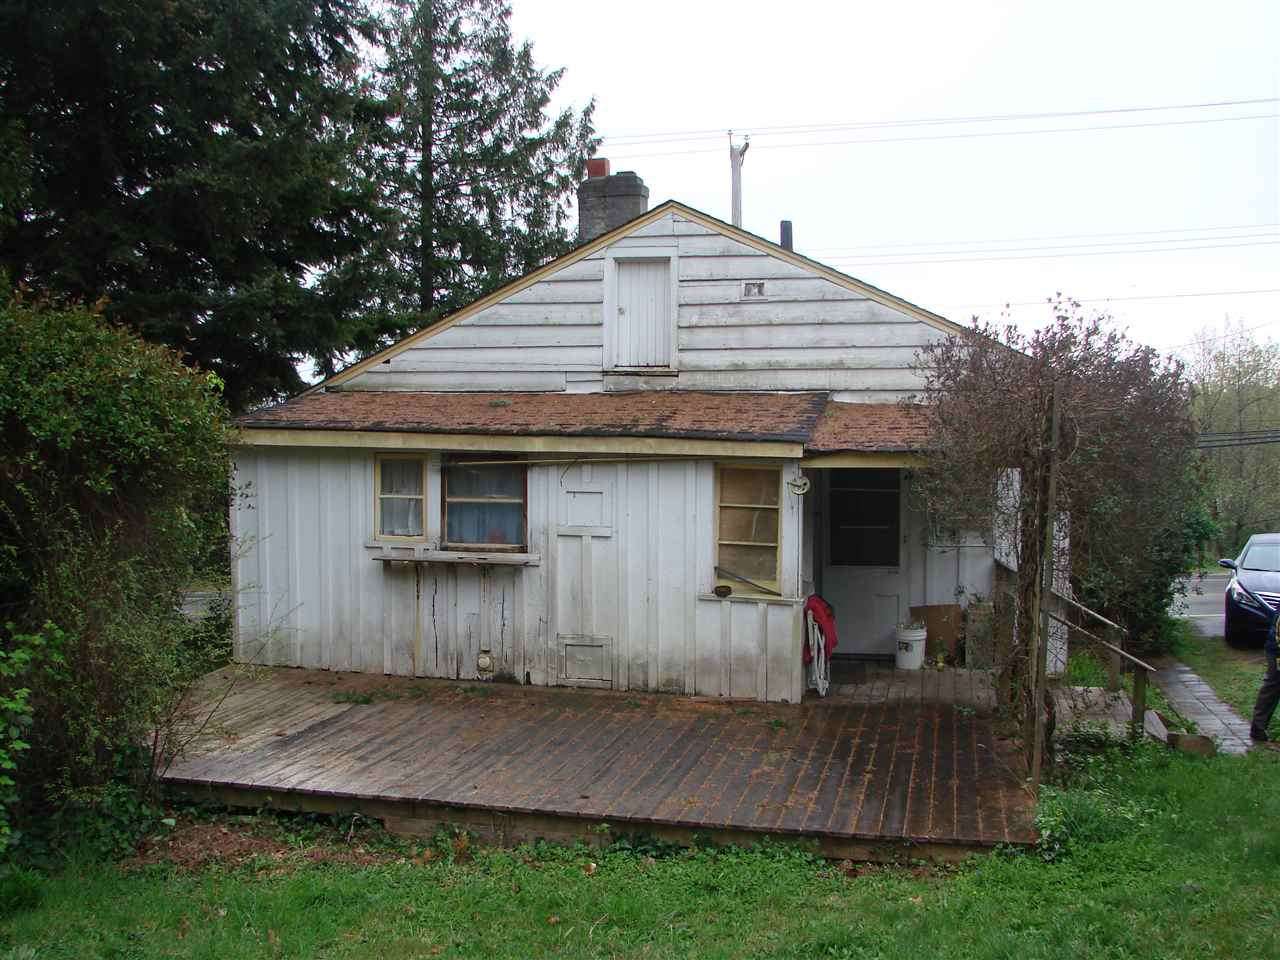 Photo 7: 6236 SUNSHINE COAST Highway in Sechelt: Sechelt District House for sale (Sunshine Coast)  : MLS(r) # R2054957